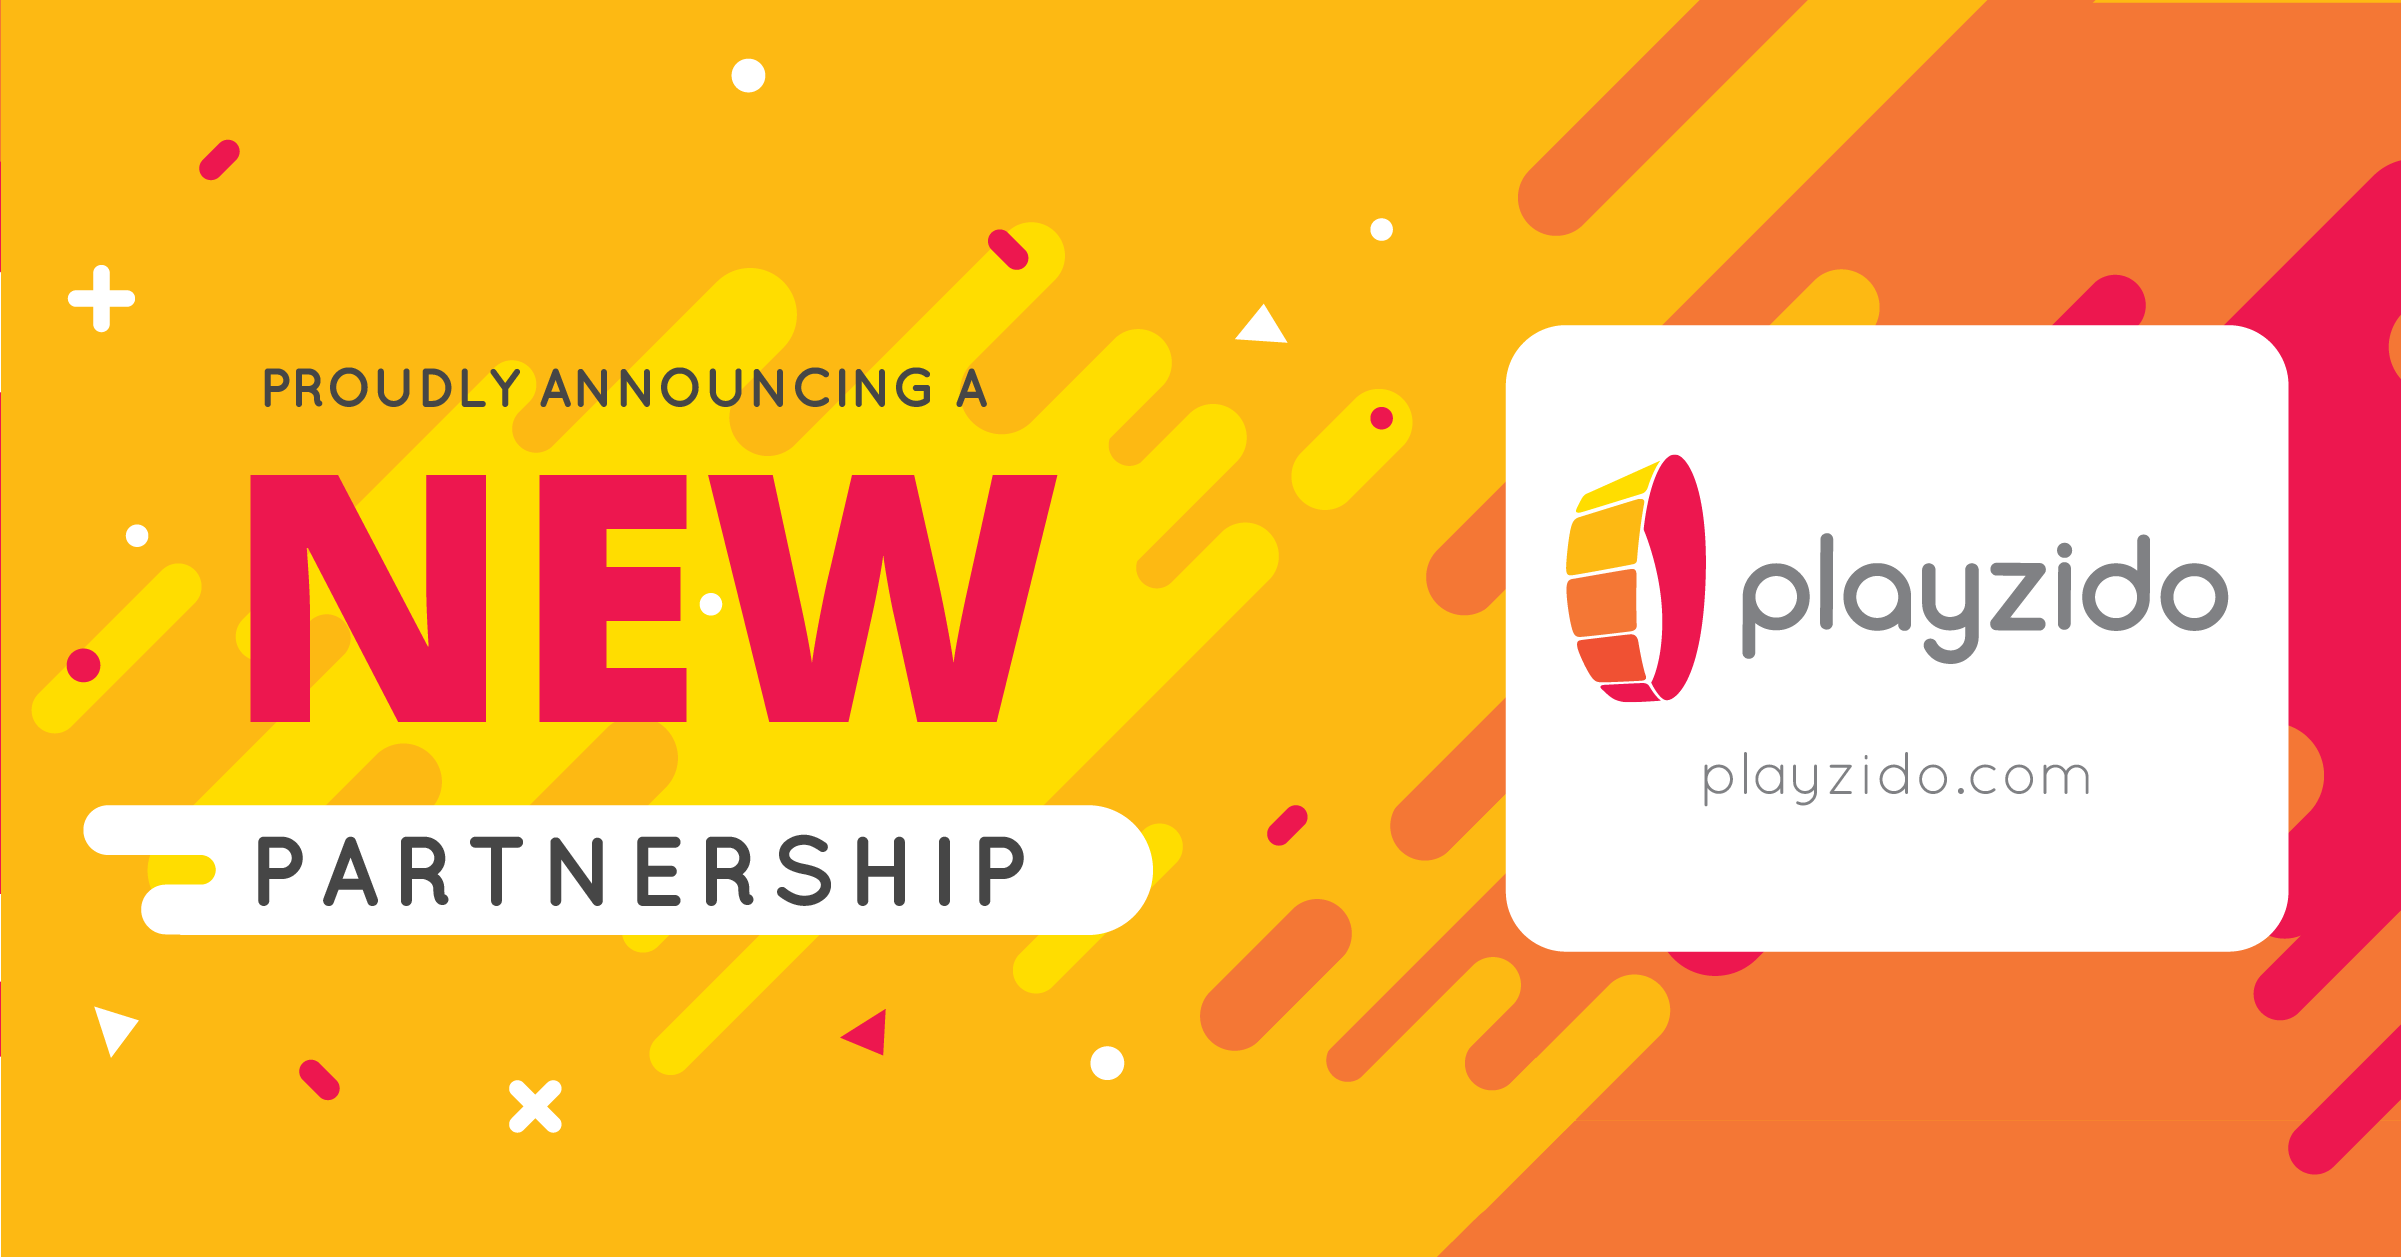 Playzido partners with Bulletproof & MikoApps